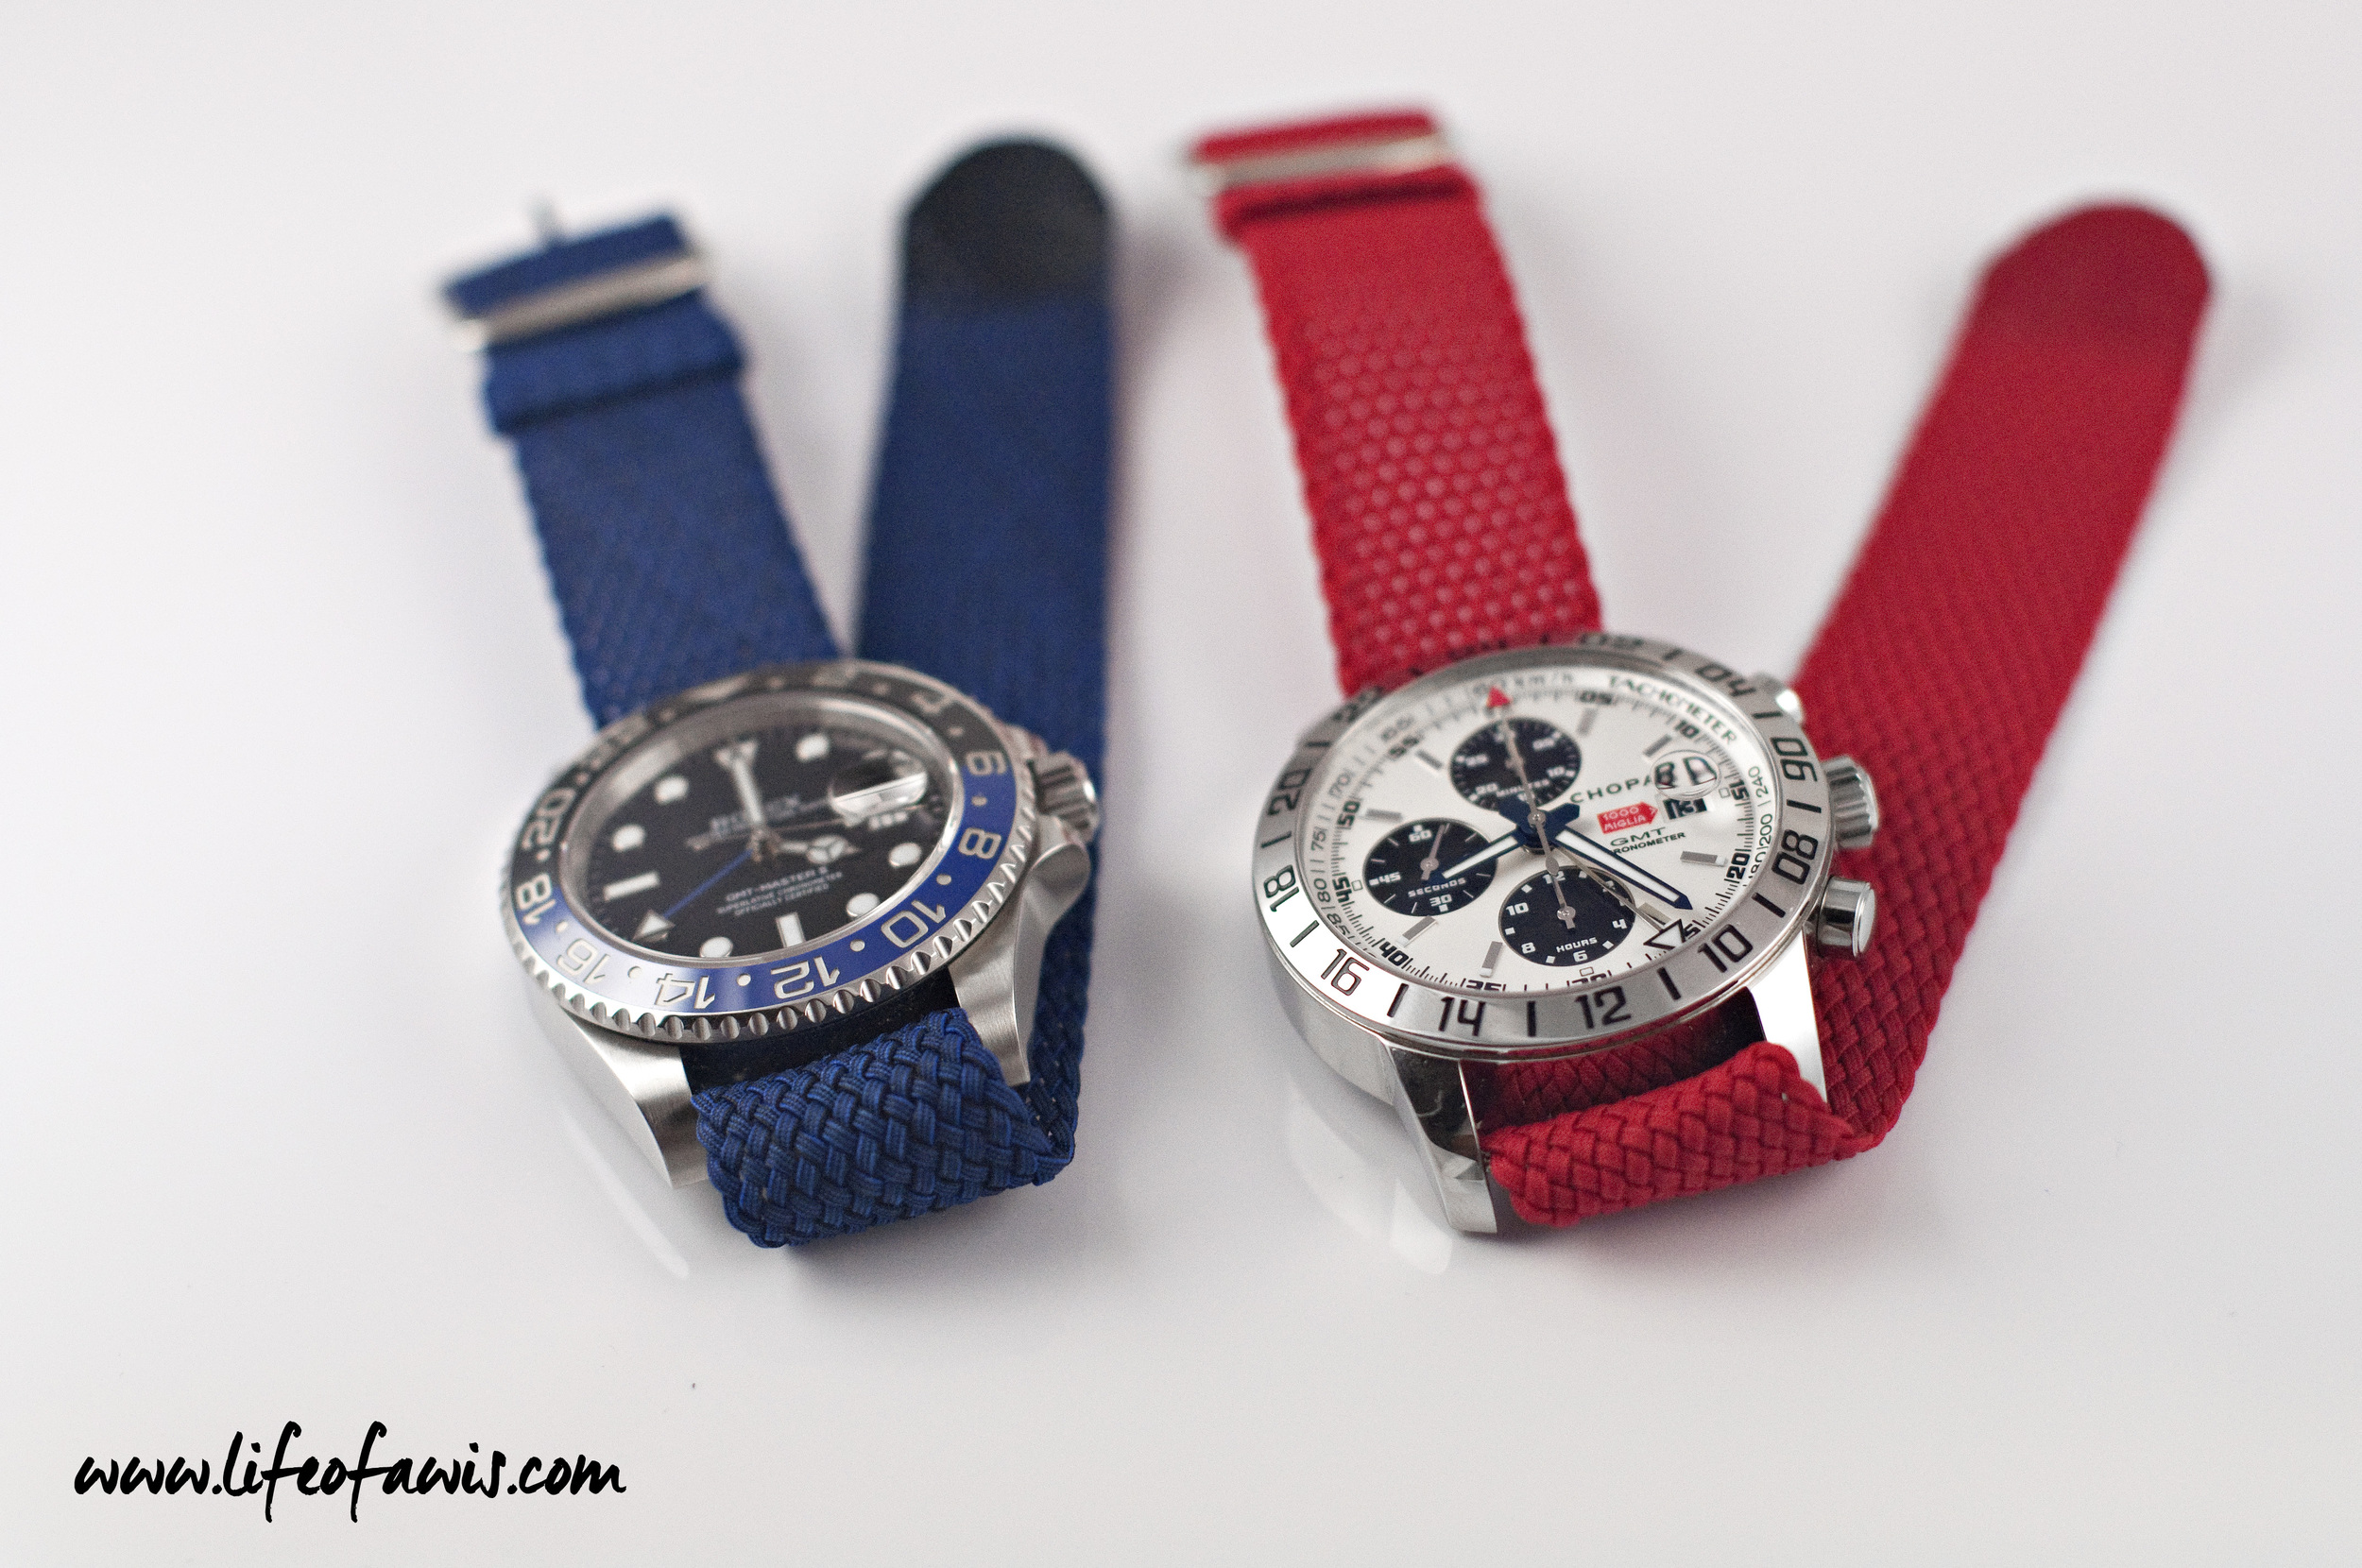 I must say that these two watches look quite nice with these perlon straps.